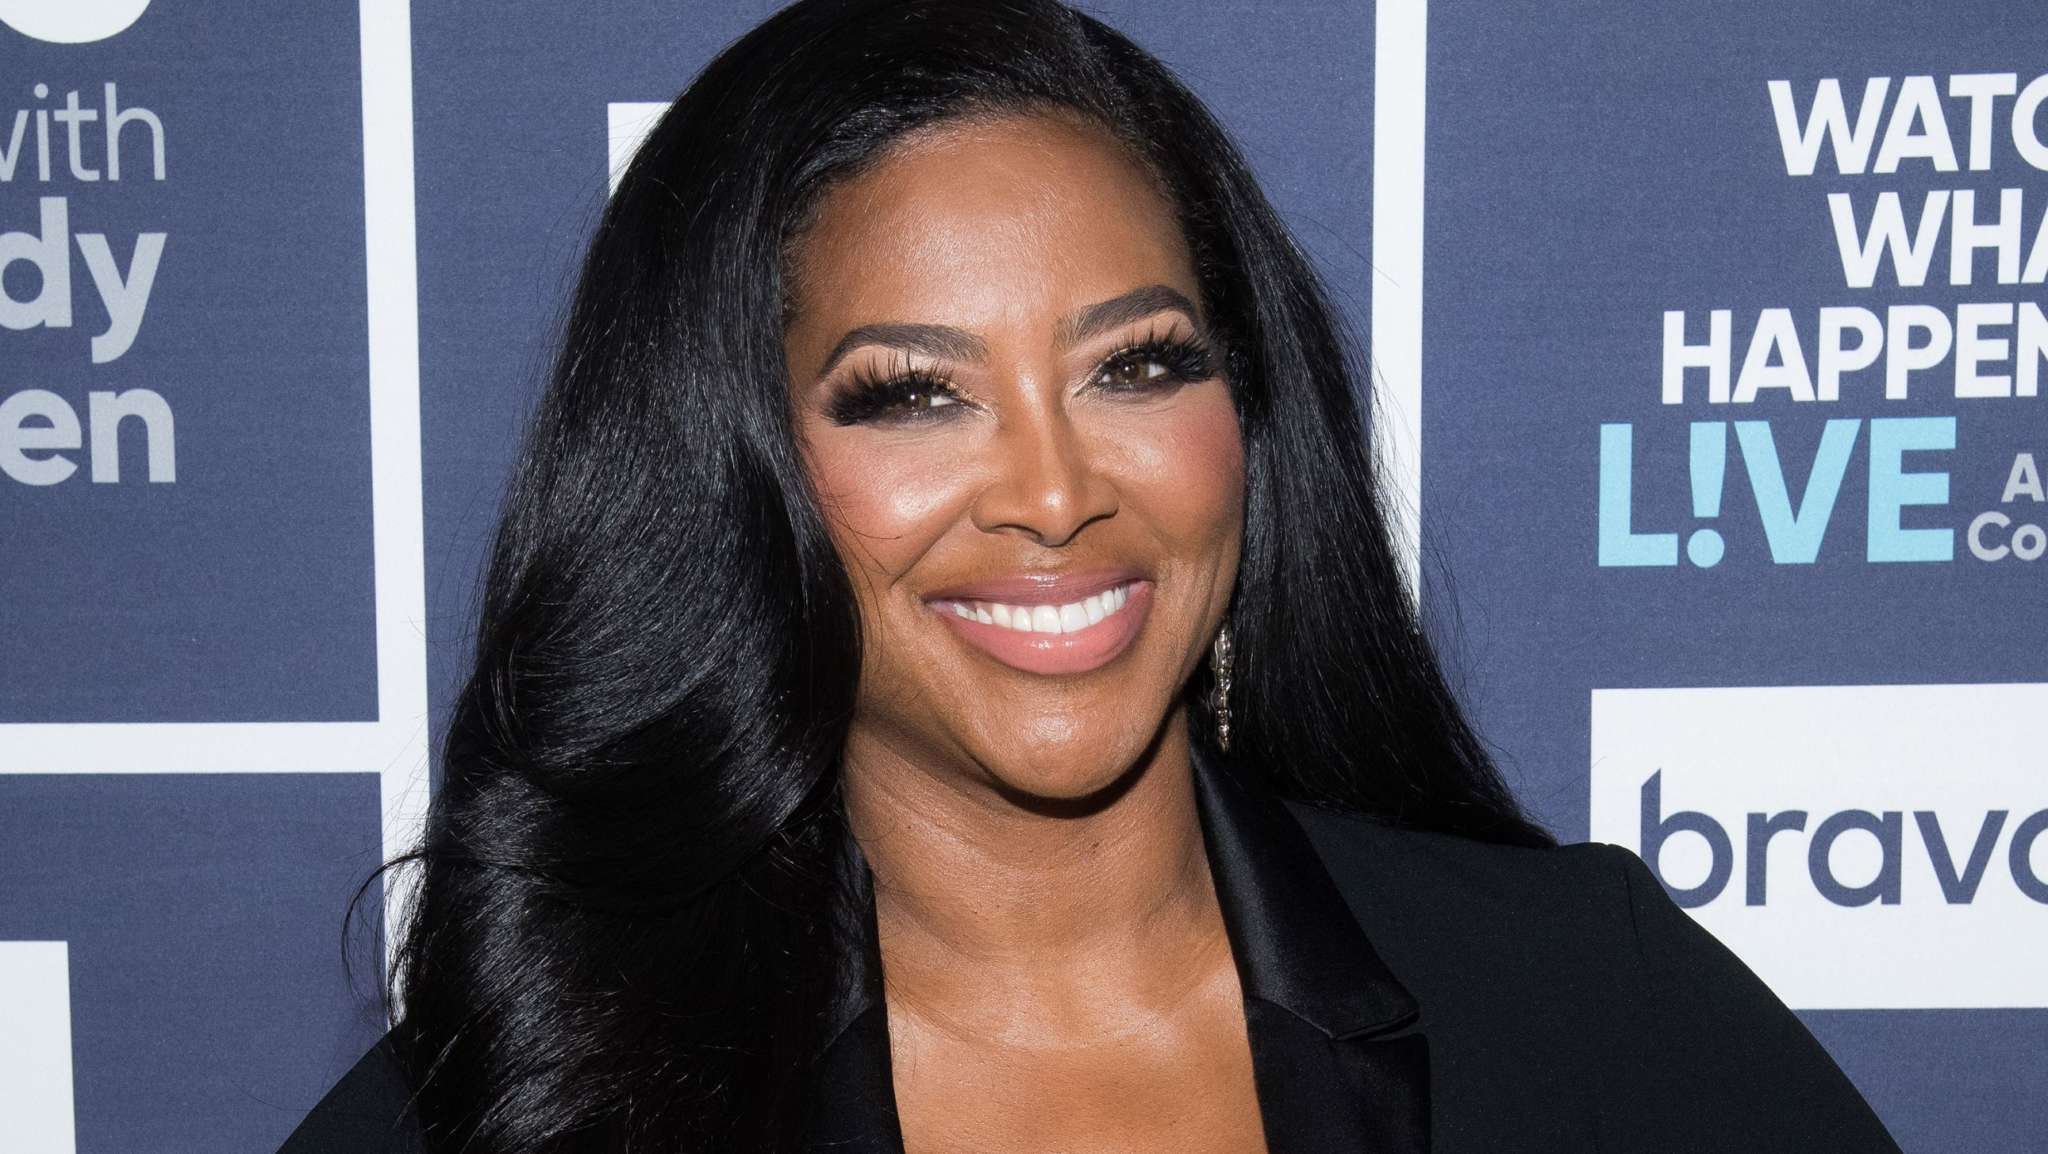 Kenya Moore Shares A New Jaw-Dropping Look That Blows Fans' Minds - See Her Latest Photo